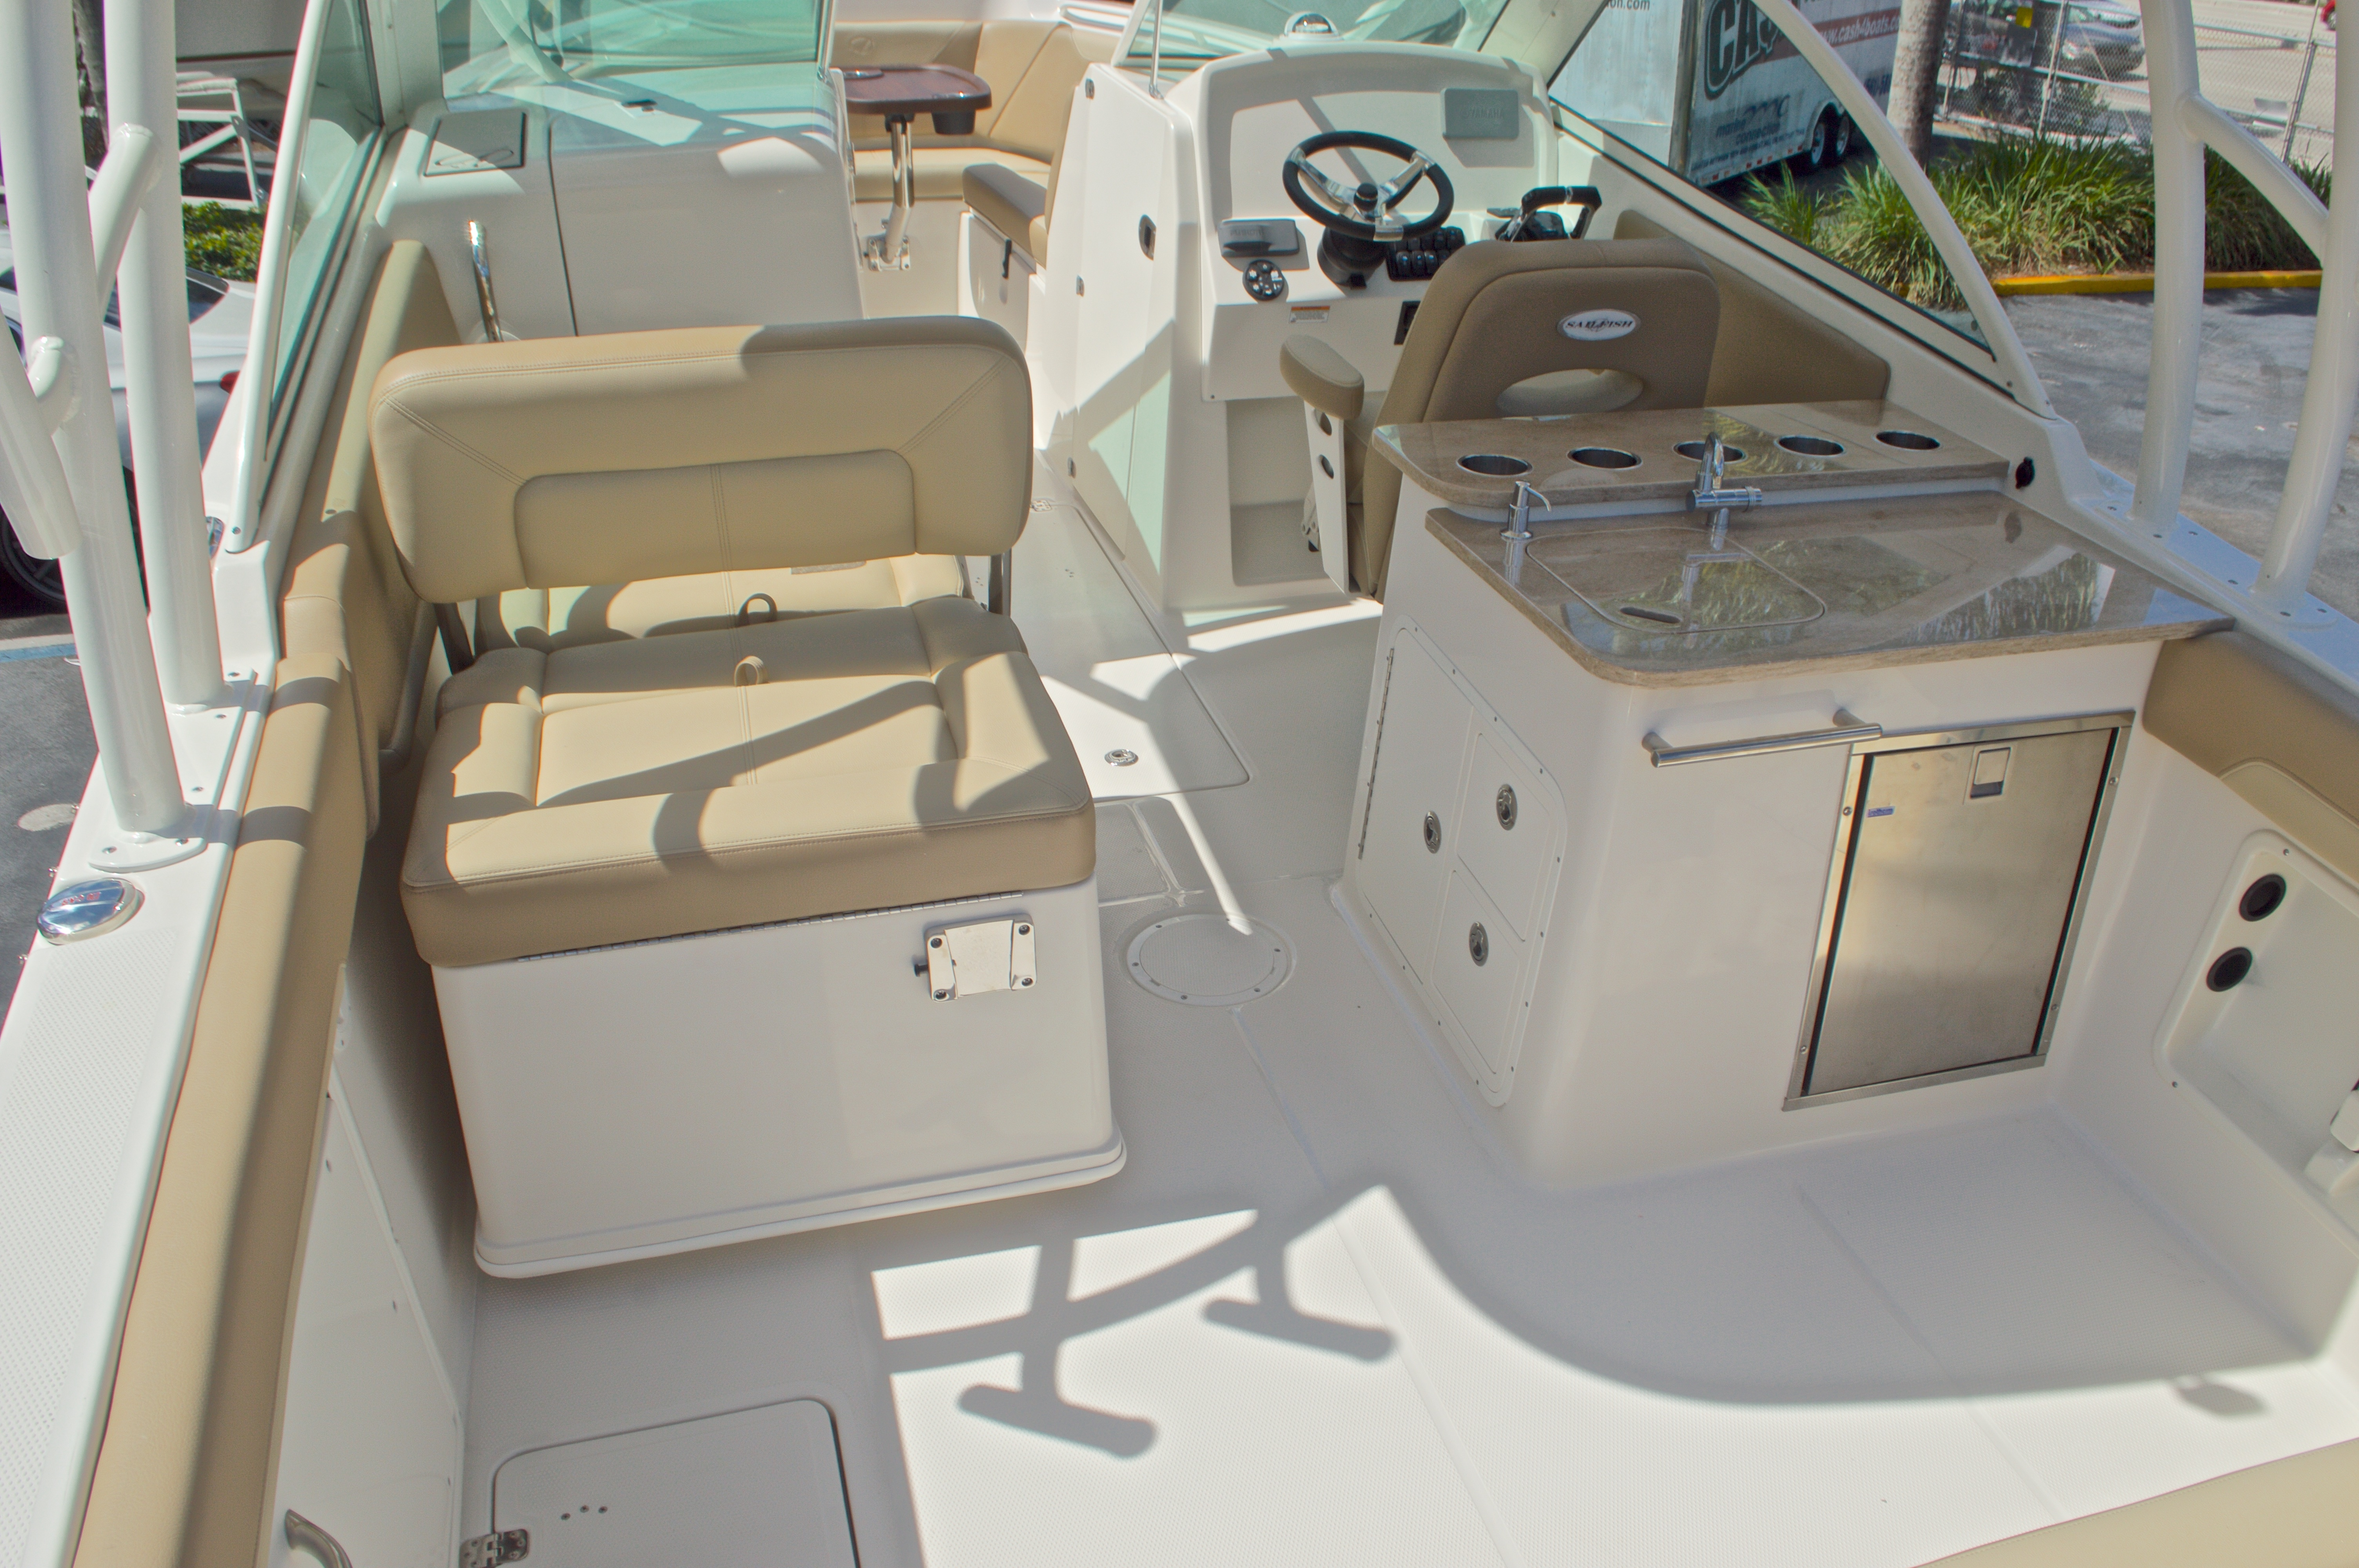 Thumbnail 16 for New 2017 Sailfish 275 Dual Console boat for sale in West Palm Beach, FL